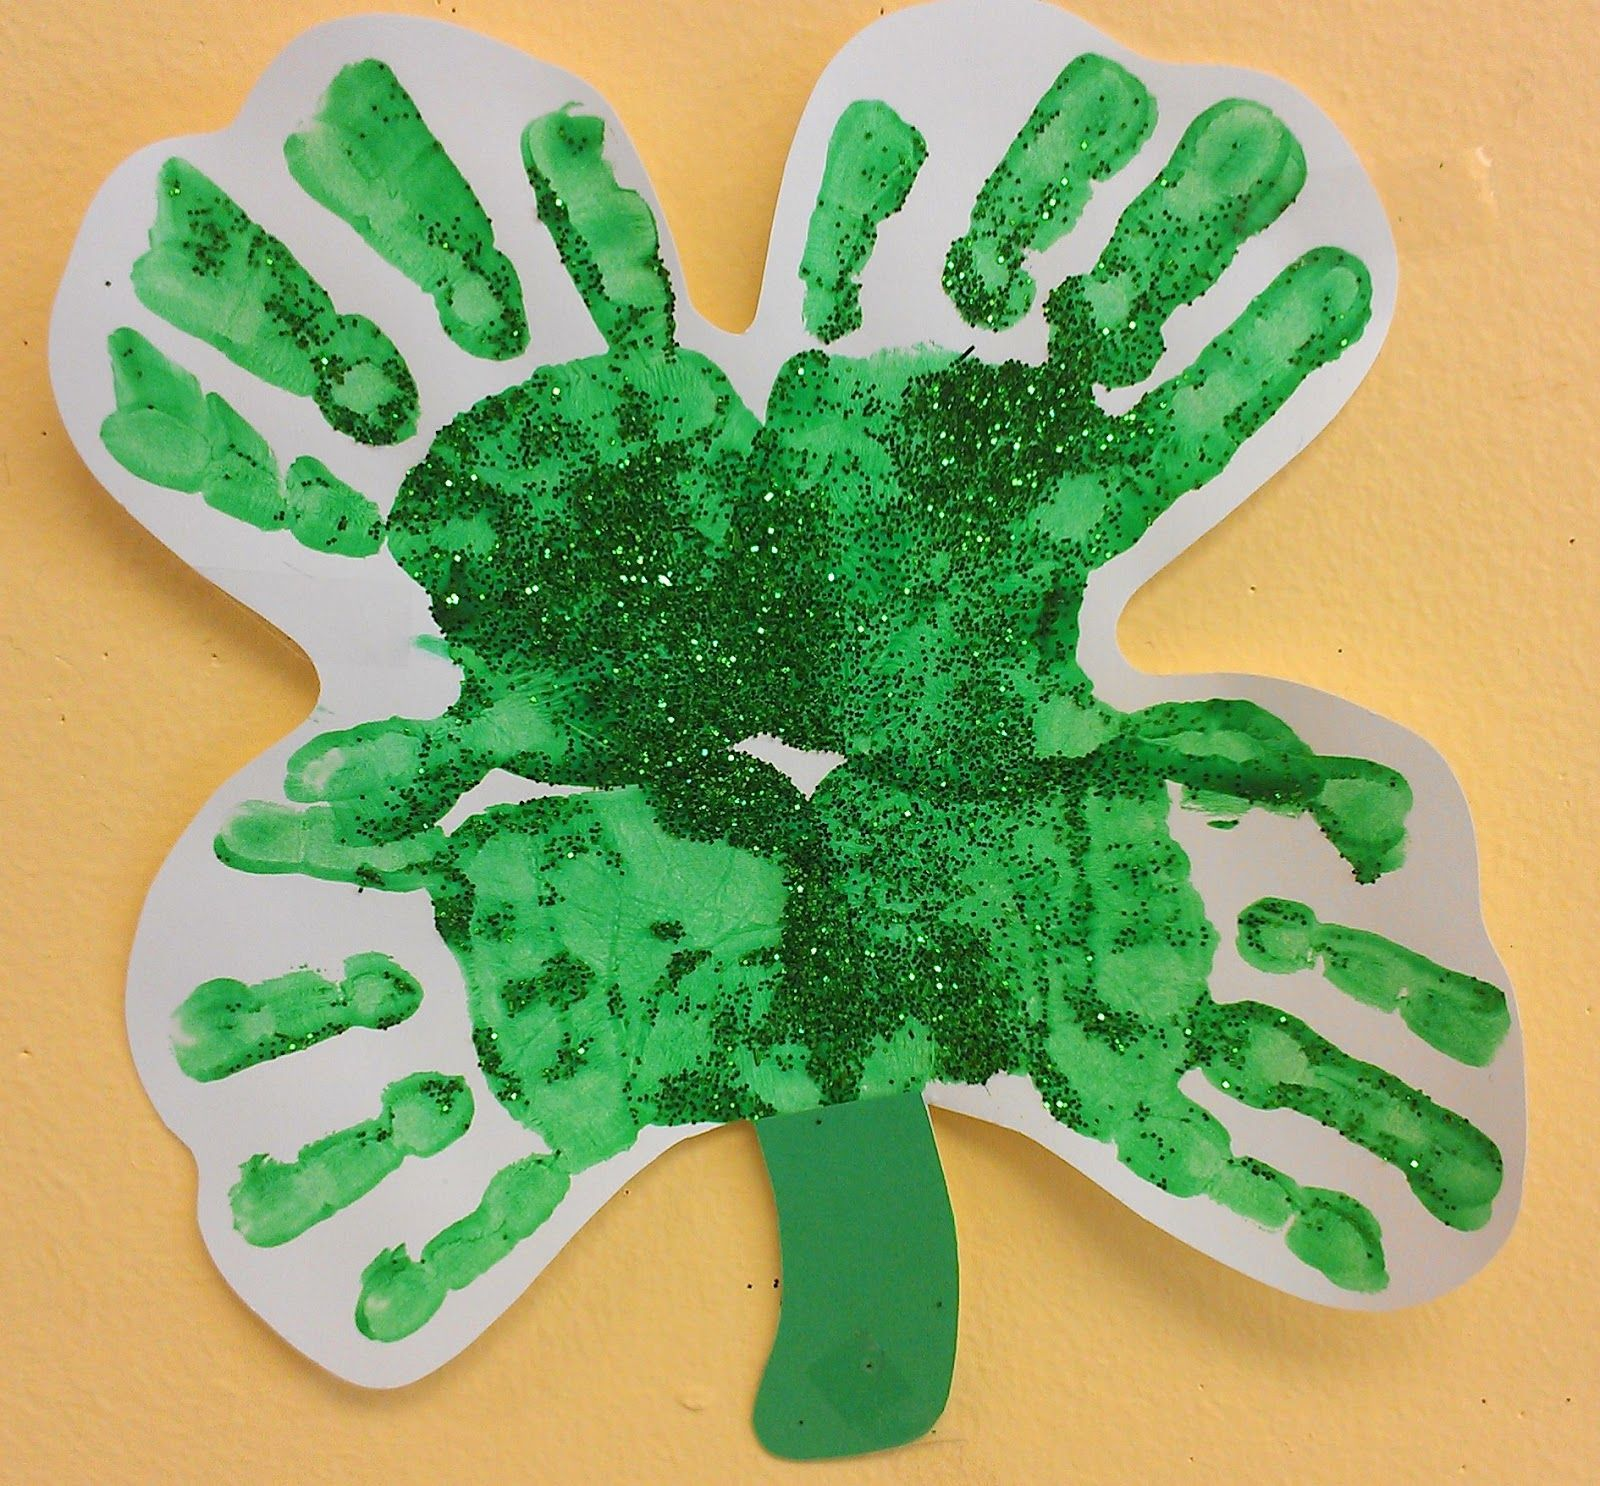 Arts and crafts for a 1 year old - Preschool Ideas For 2 Year Olds St Patrick S Day Handprint Rainbow